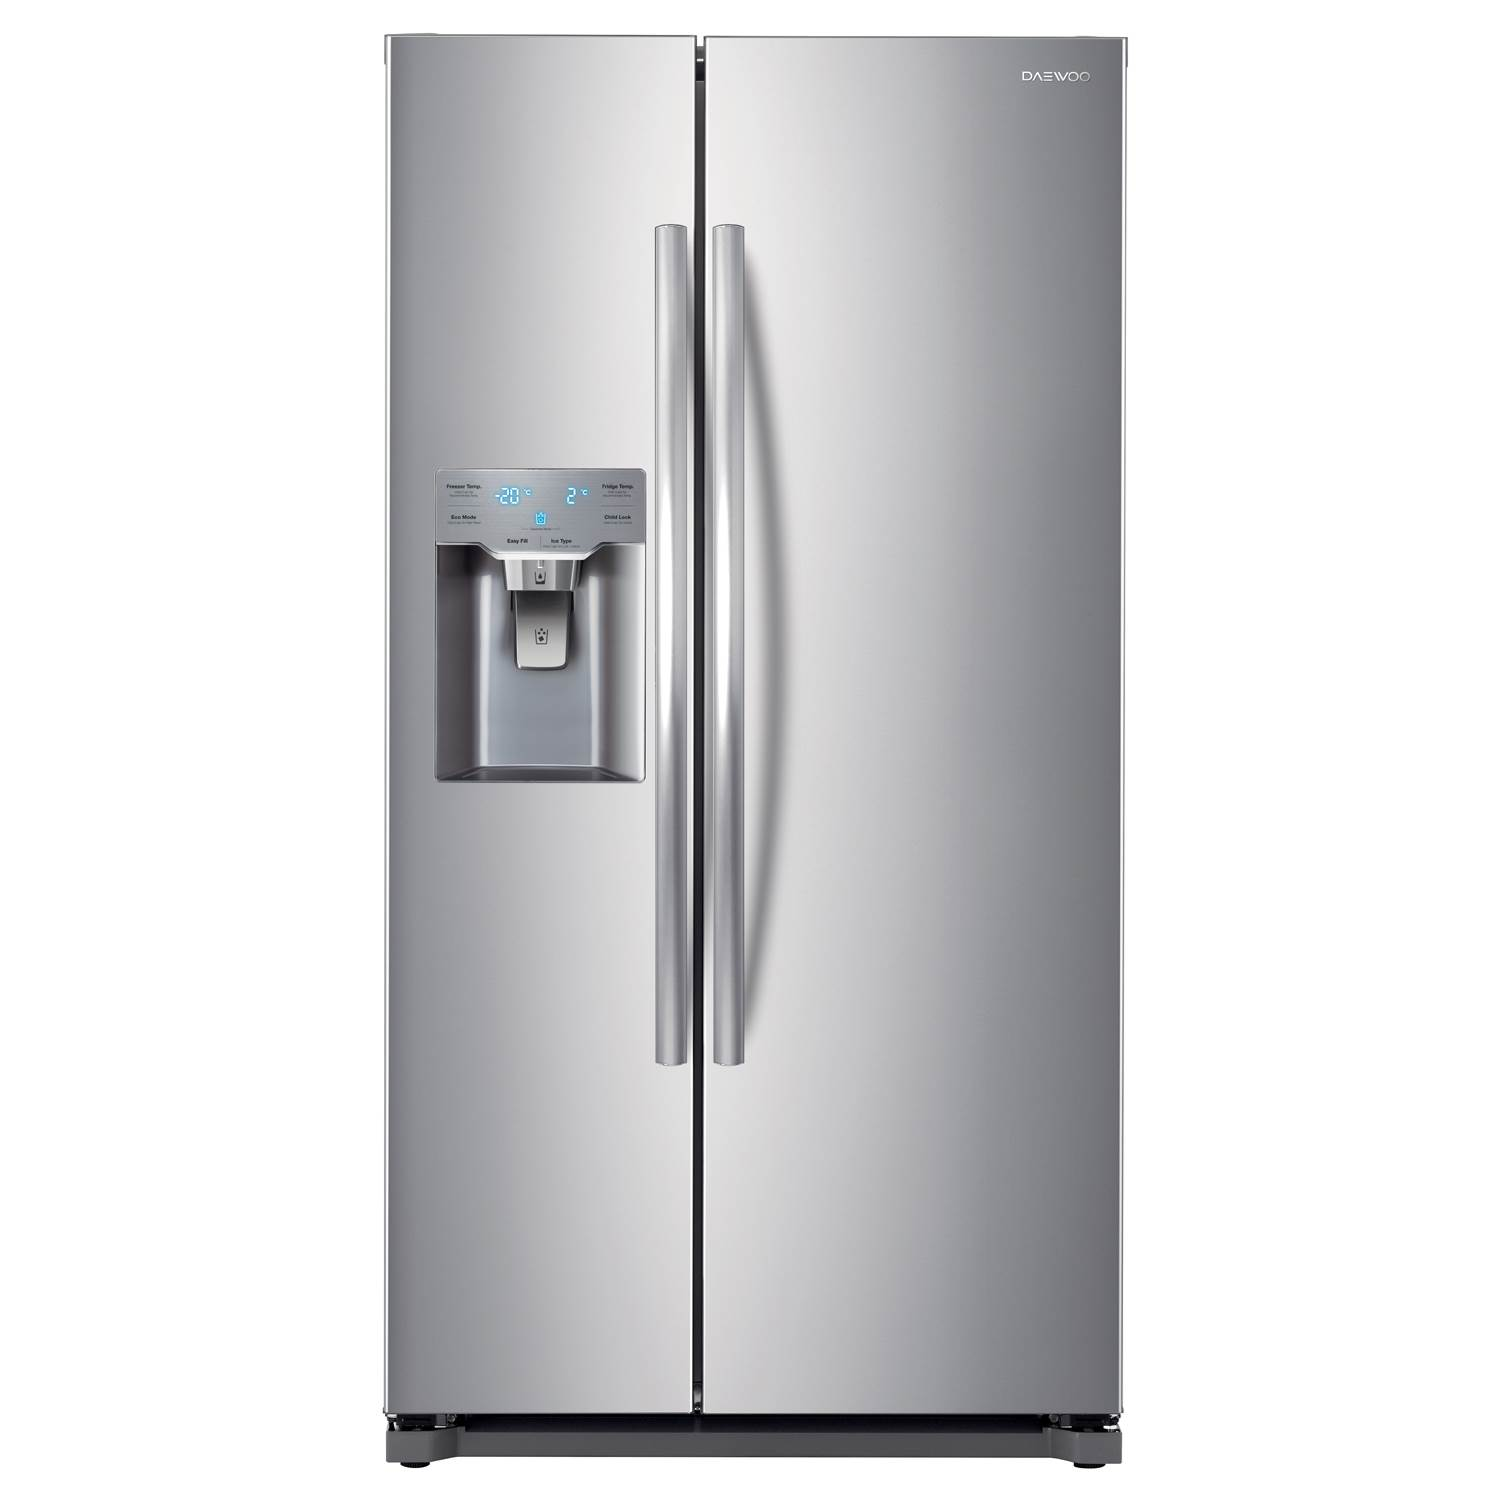 Daewoo DRZB53NPES American Style Fridge Freezer with Ice & Water in